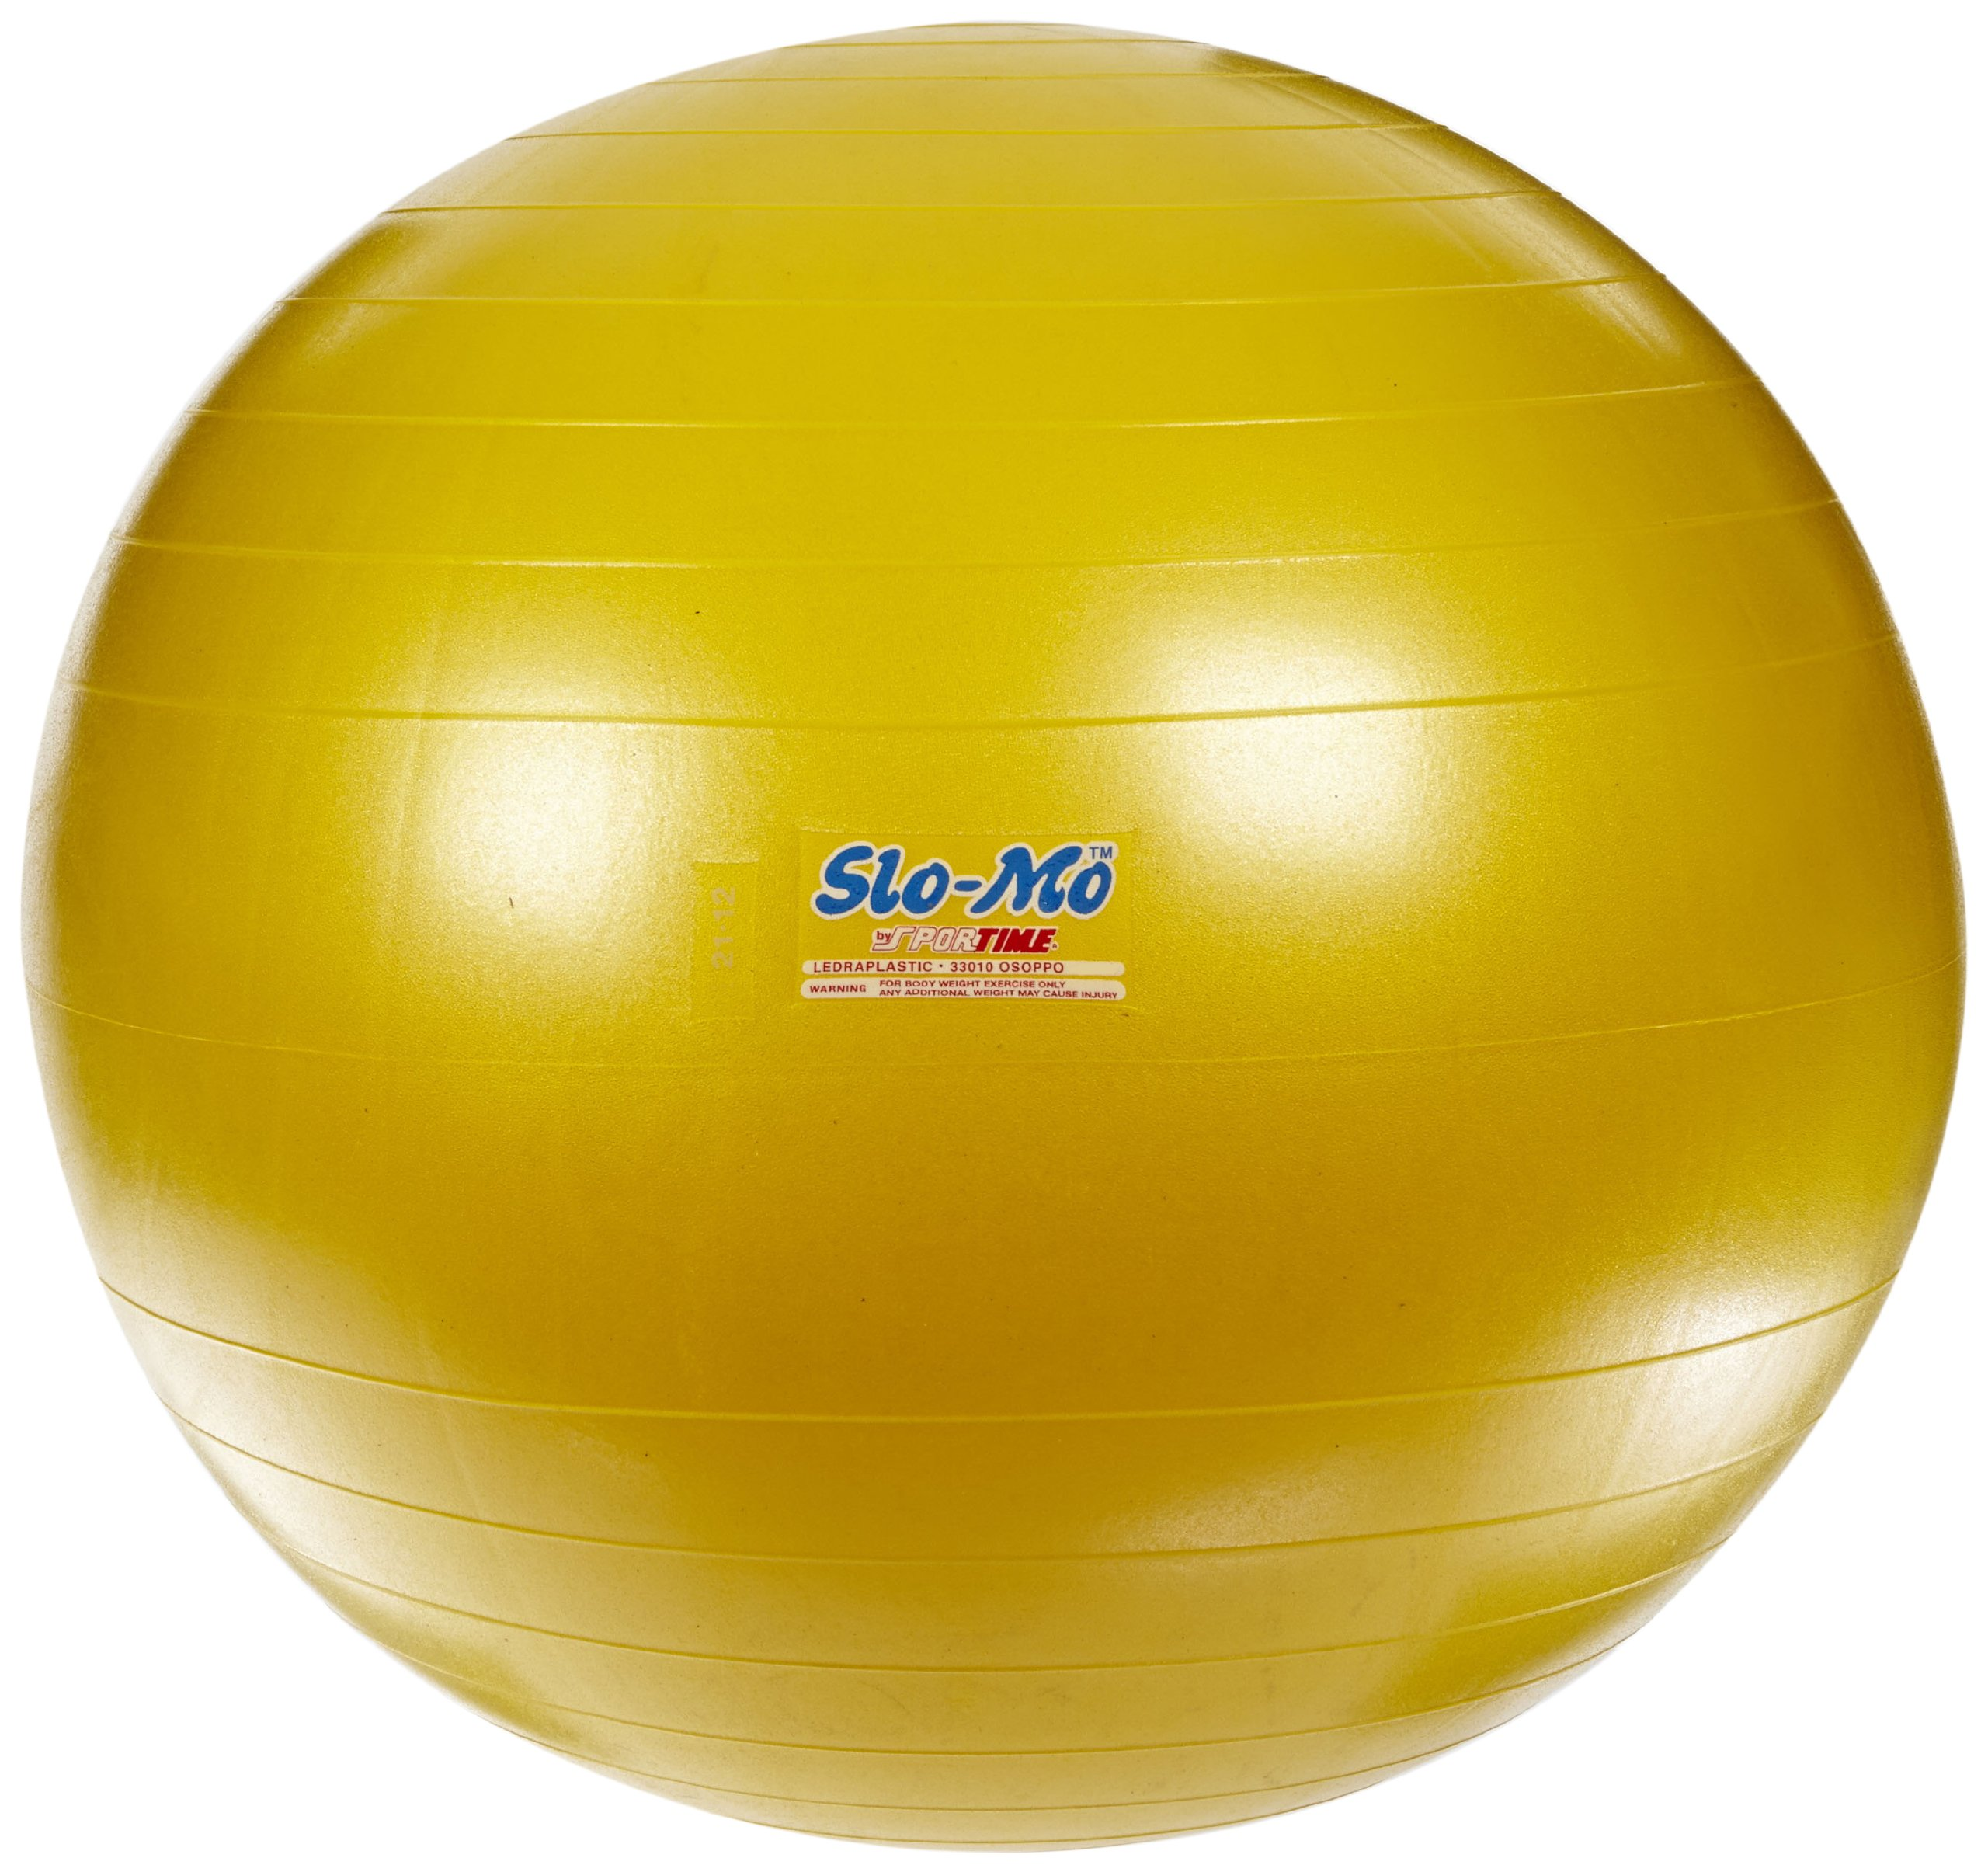 Gymnic Giant SloMo Ball, 29-1/2 Inches by Abilitations